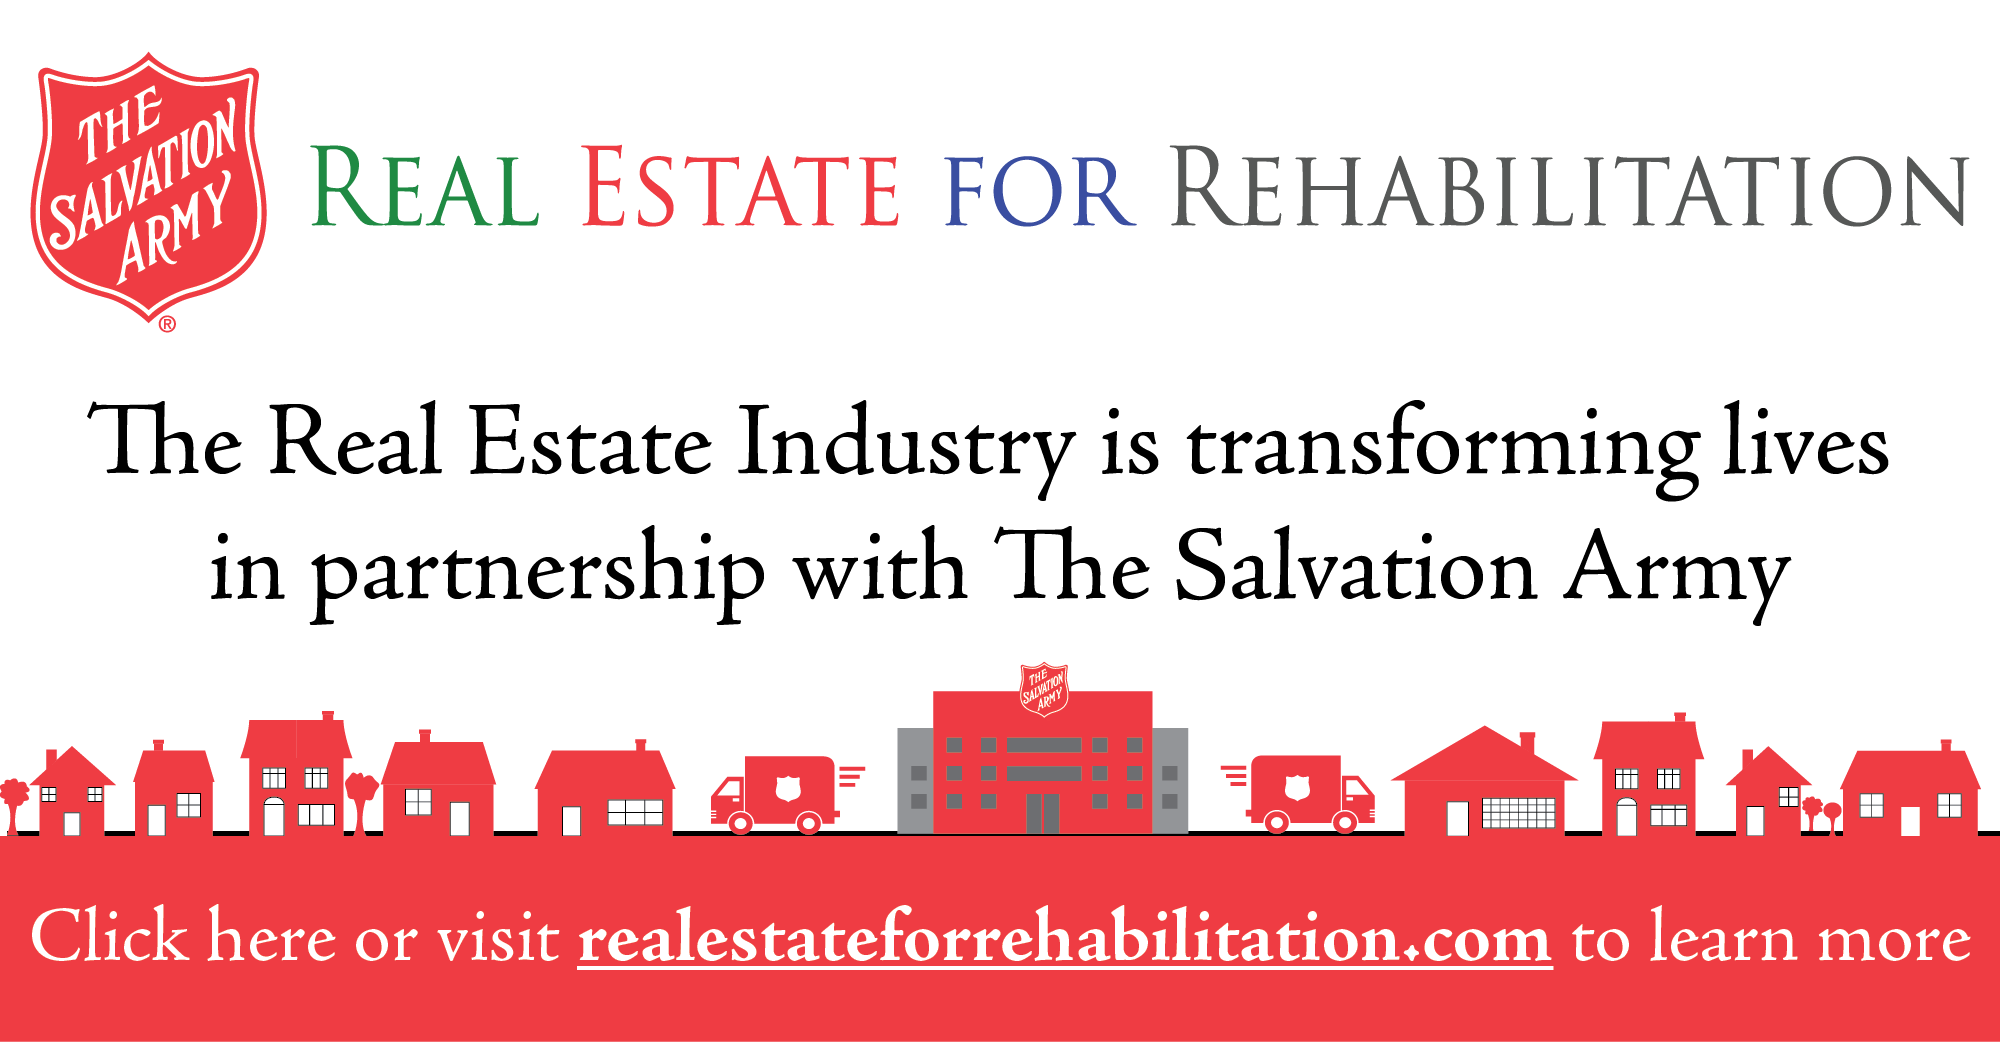 Real Estate for Rehabilitation Salvation Army